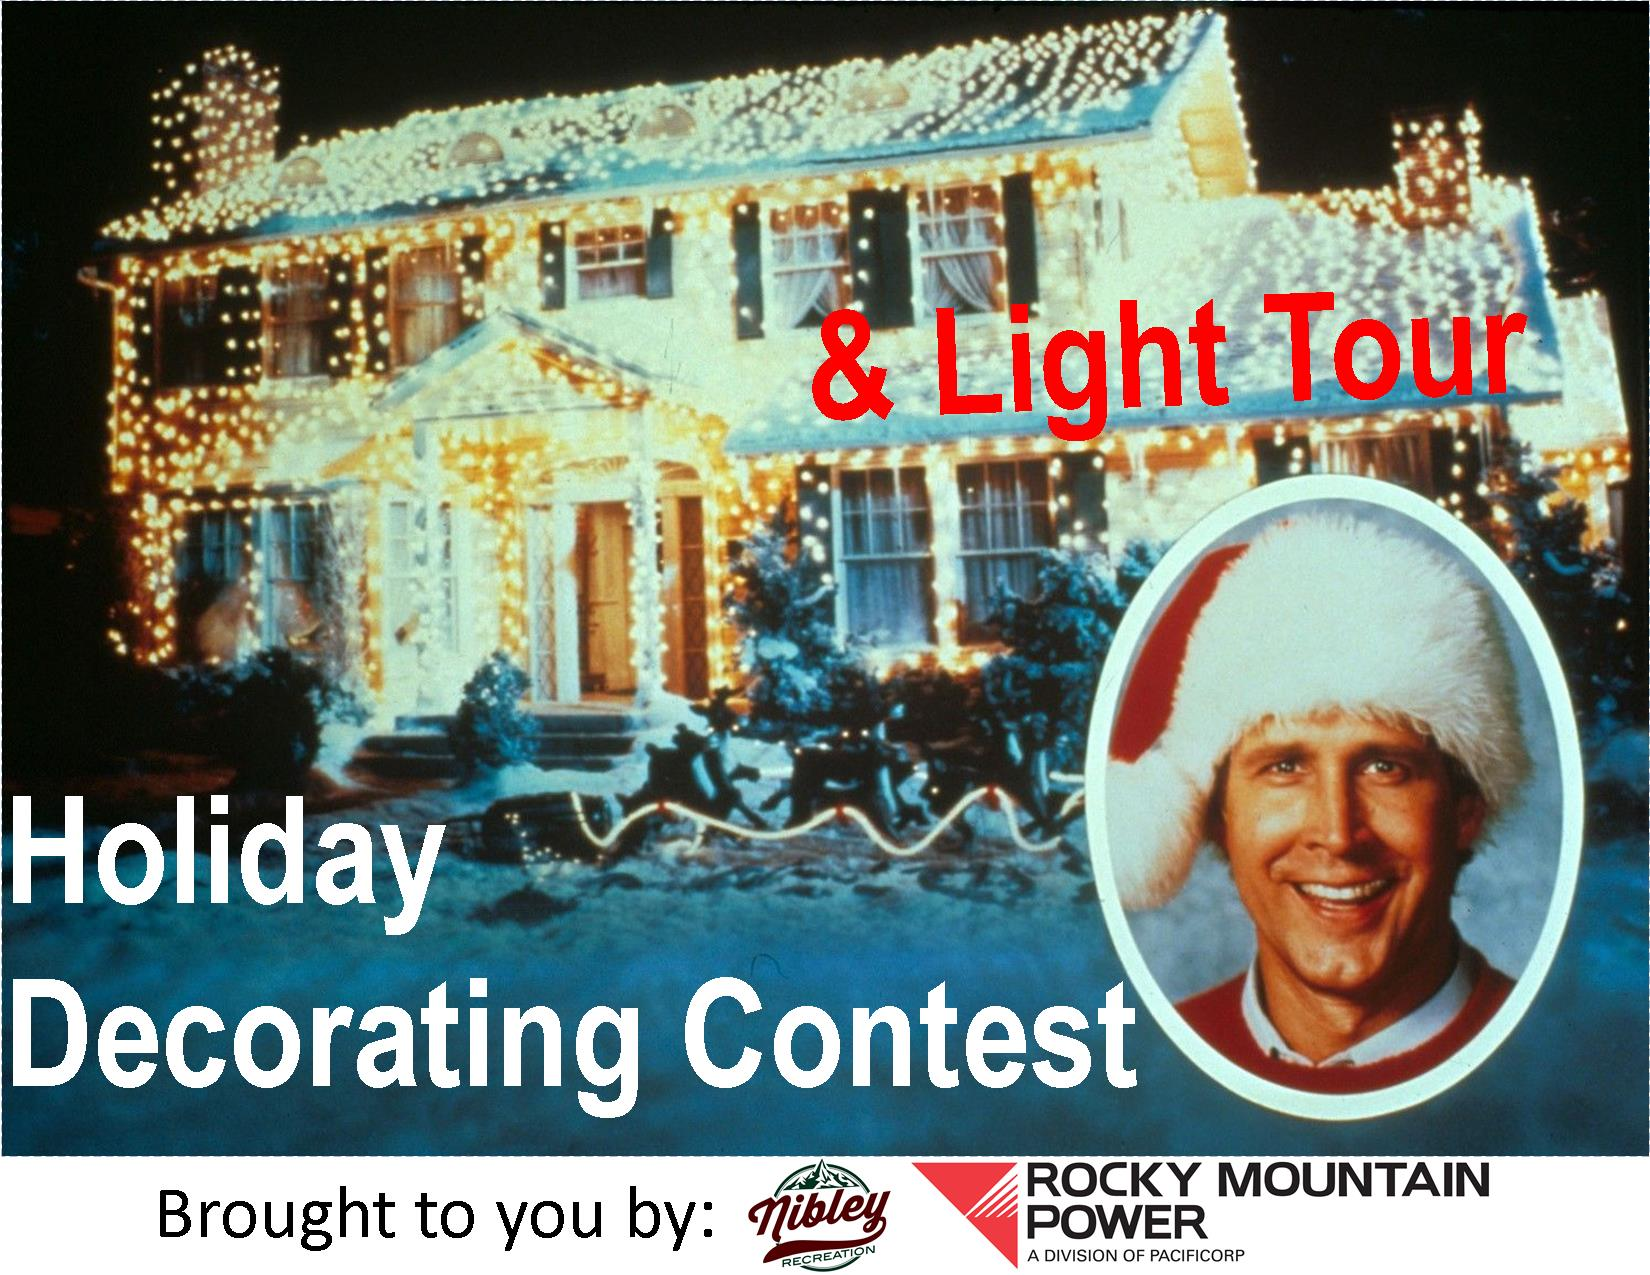 Nibley Holiday Decorating Contest N Light Tour Rocky Mountain Power